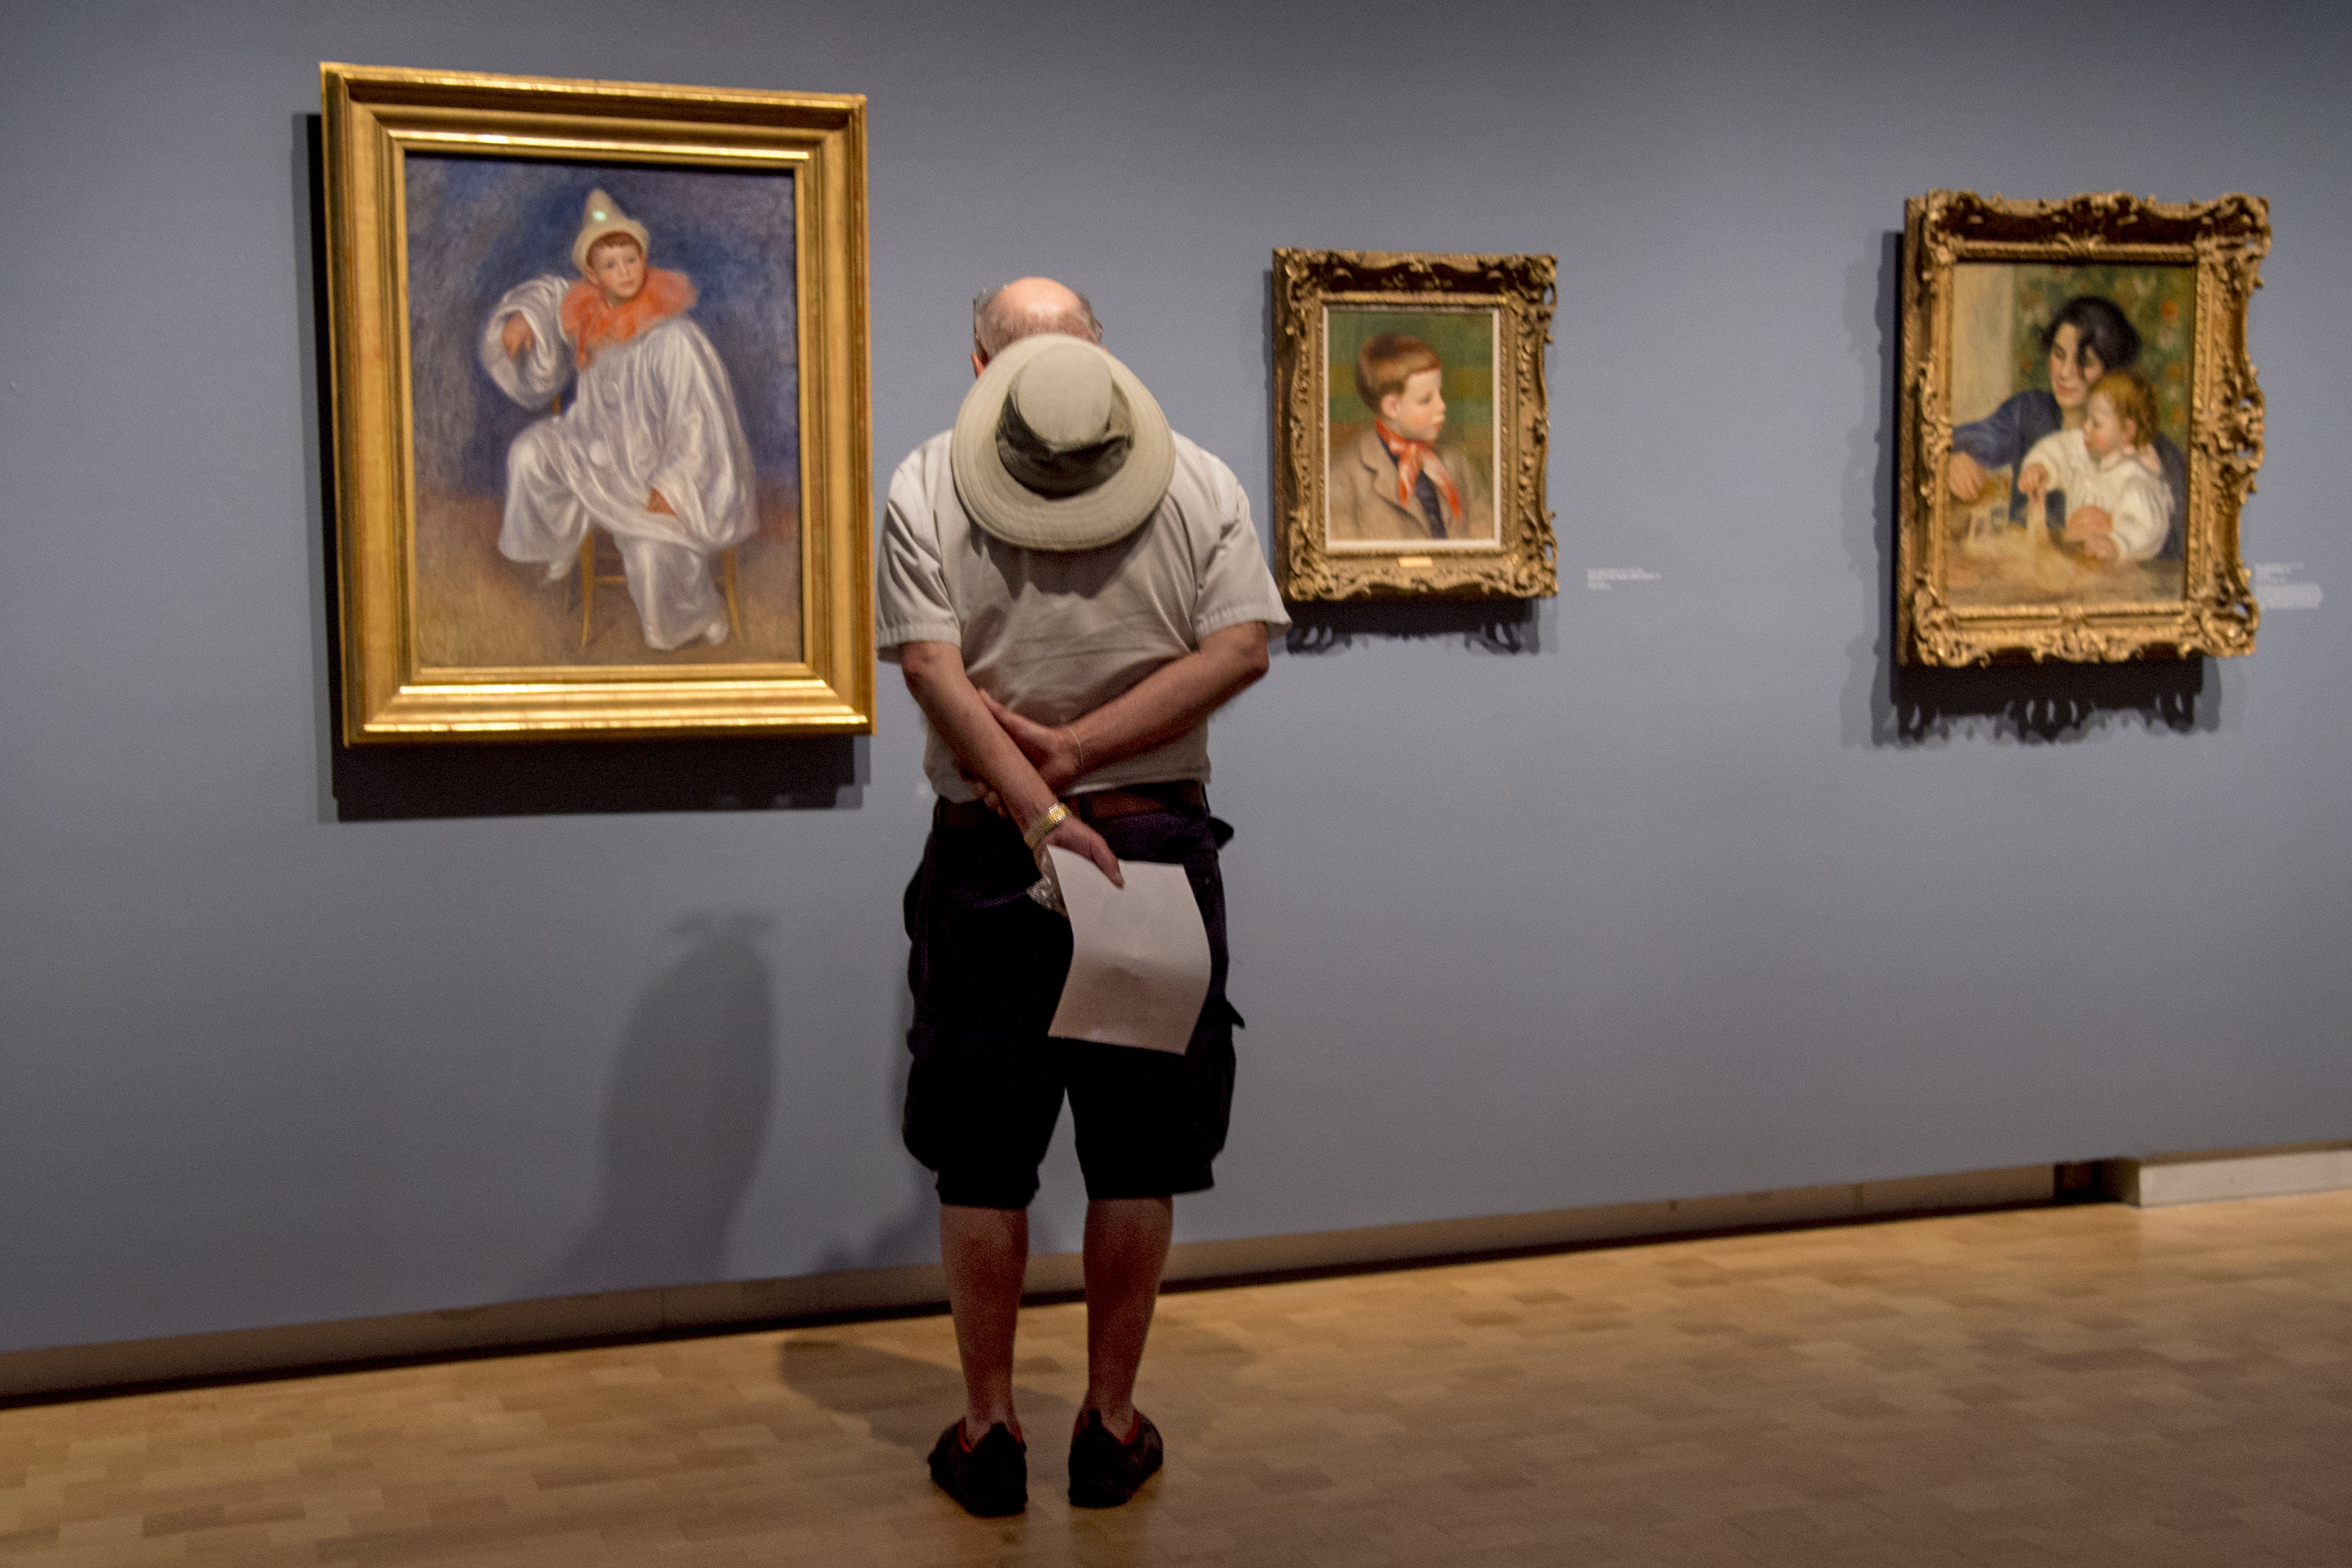 """Rich Kato looks over the paintings in the """"Renoir: Father and Son / Painting and Cinema"""" exhibit at the Barnes Foundation June 3, 2018, during Free First Sunday Family Day and the Barnes´ first ever free block party. The paintings are by artist Pierre-Auguste Renoir, of his son, director Jean Renoir, when he was a child."""